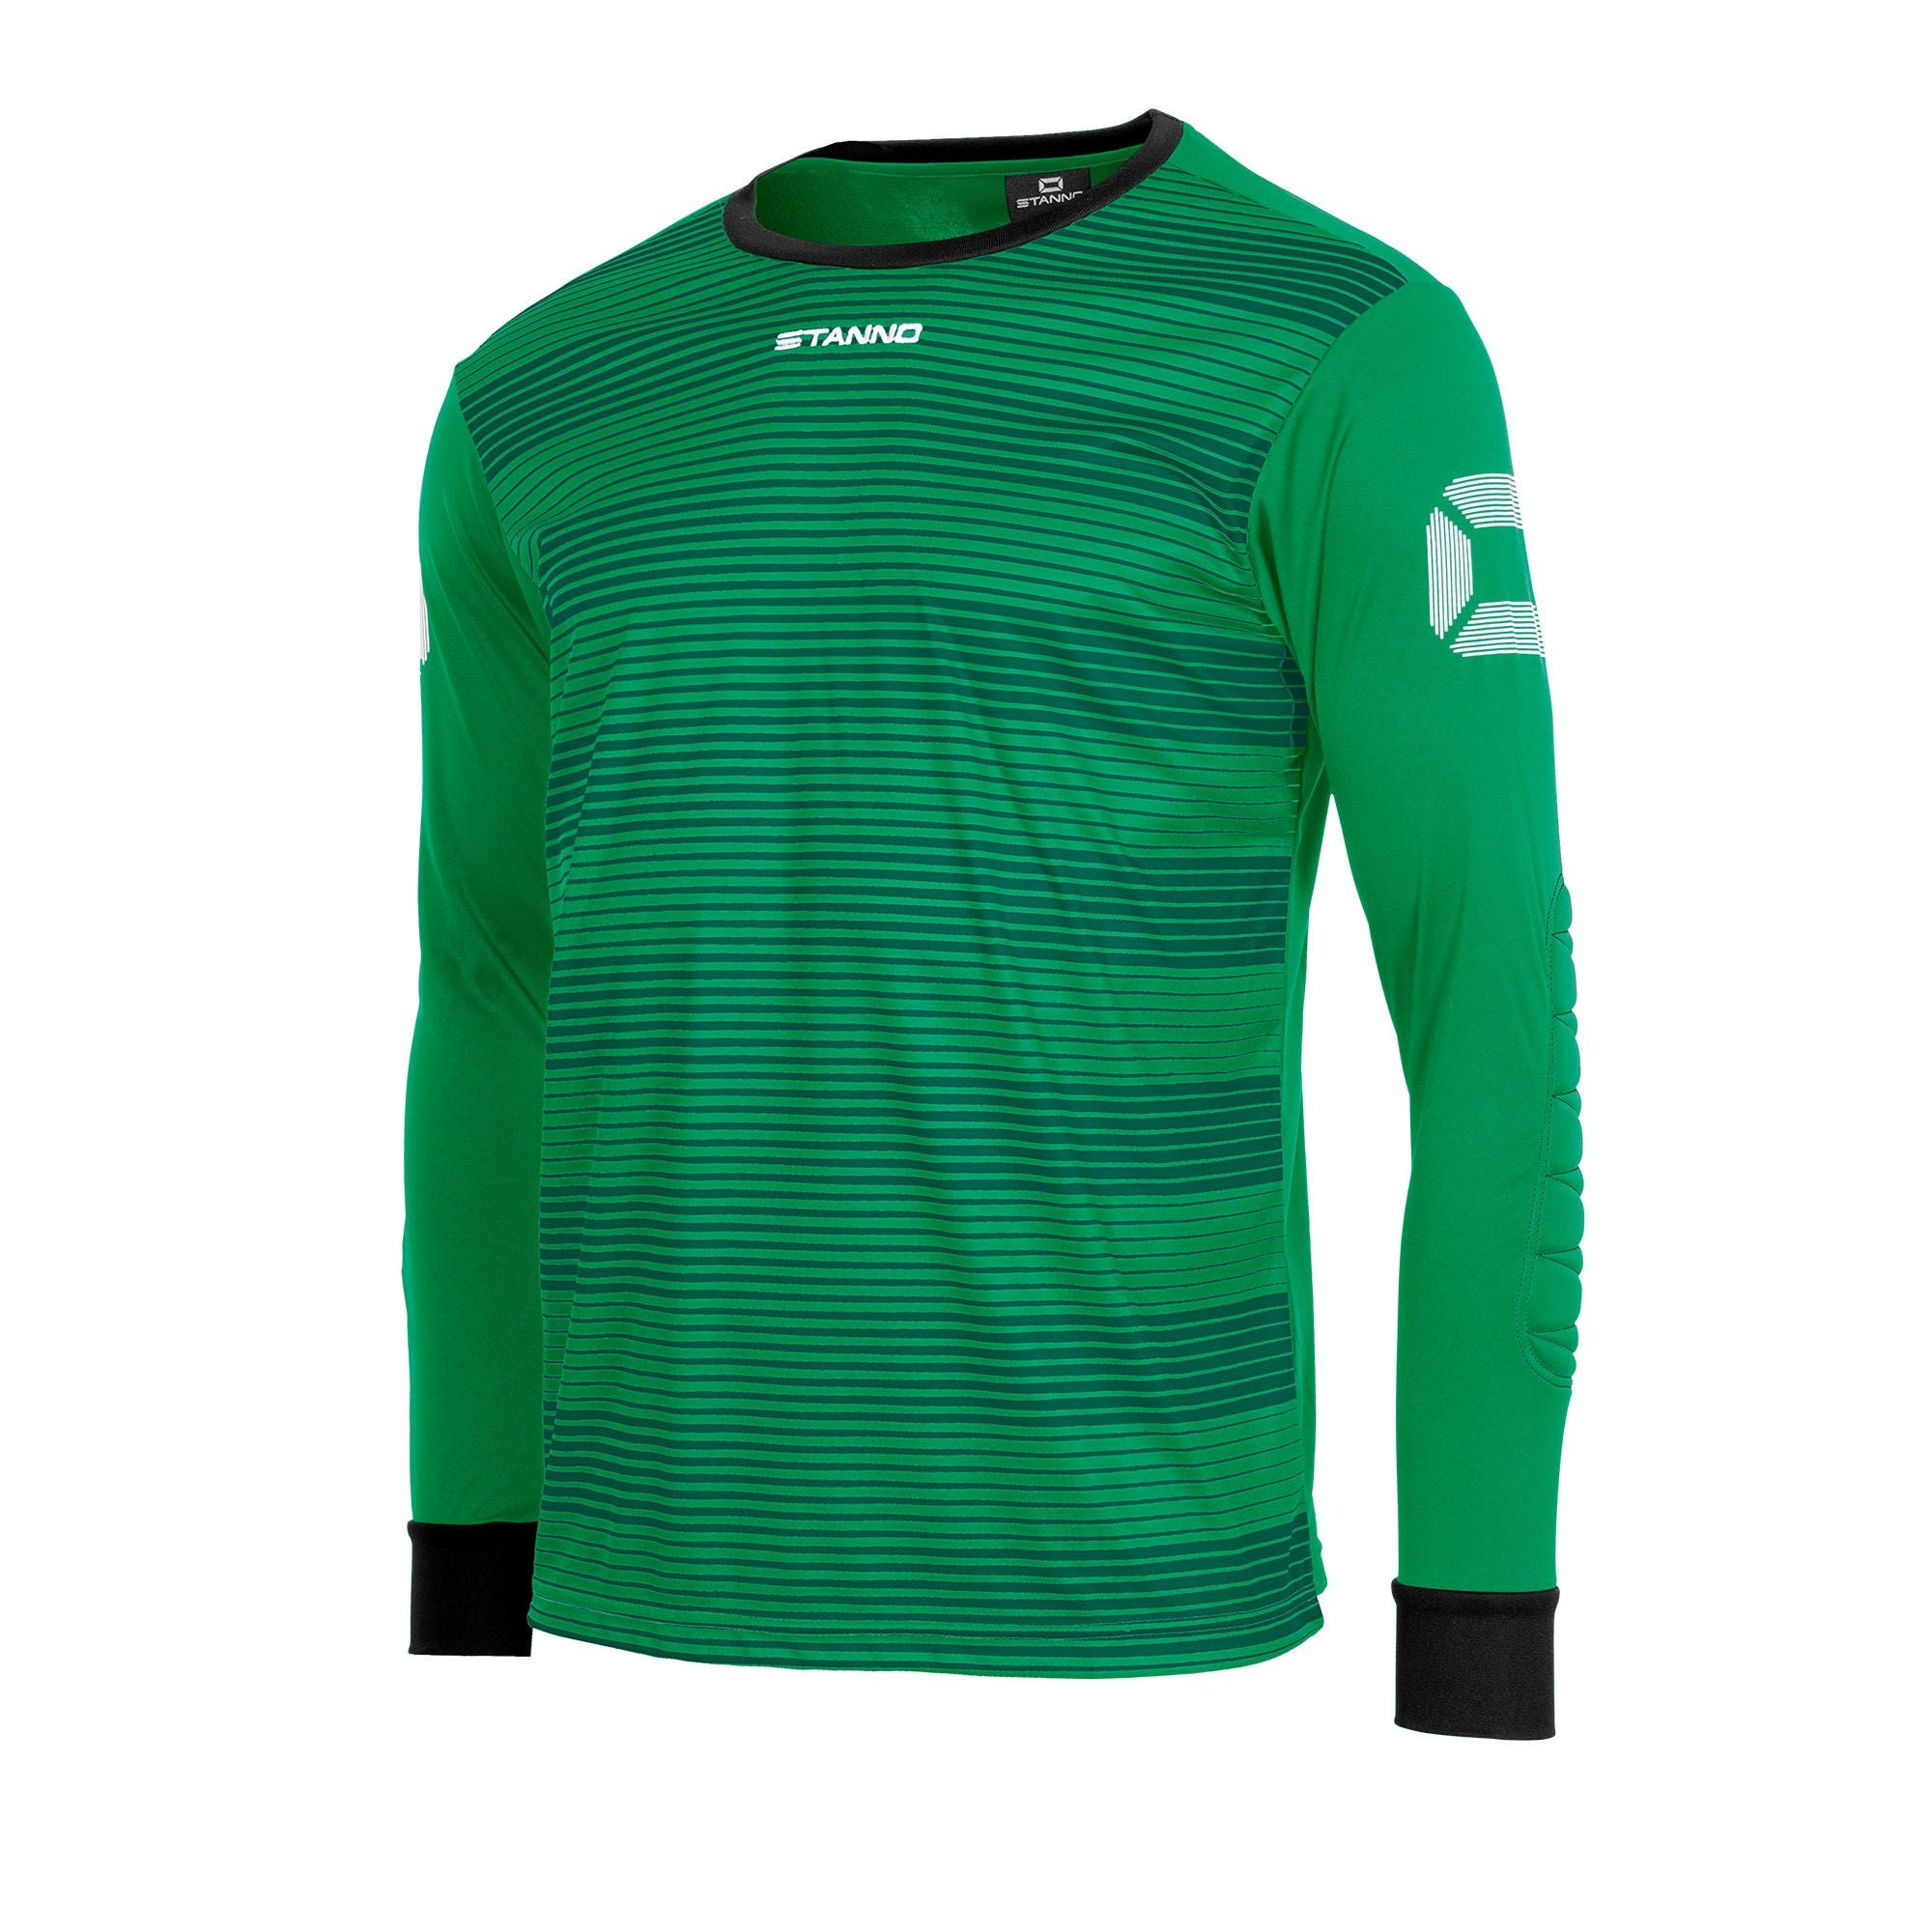 Stanno Tivoli Goalkeeper Shirt - Green/Black